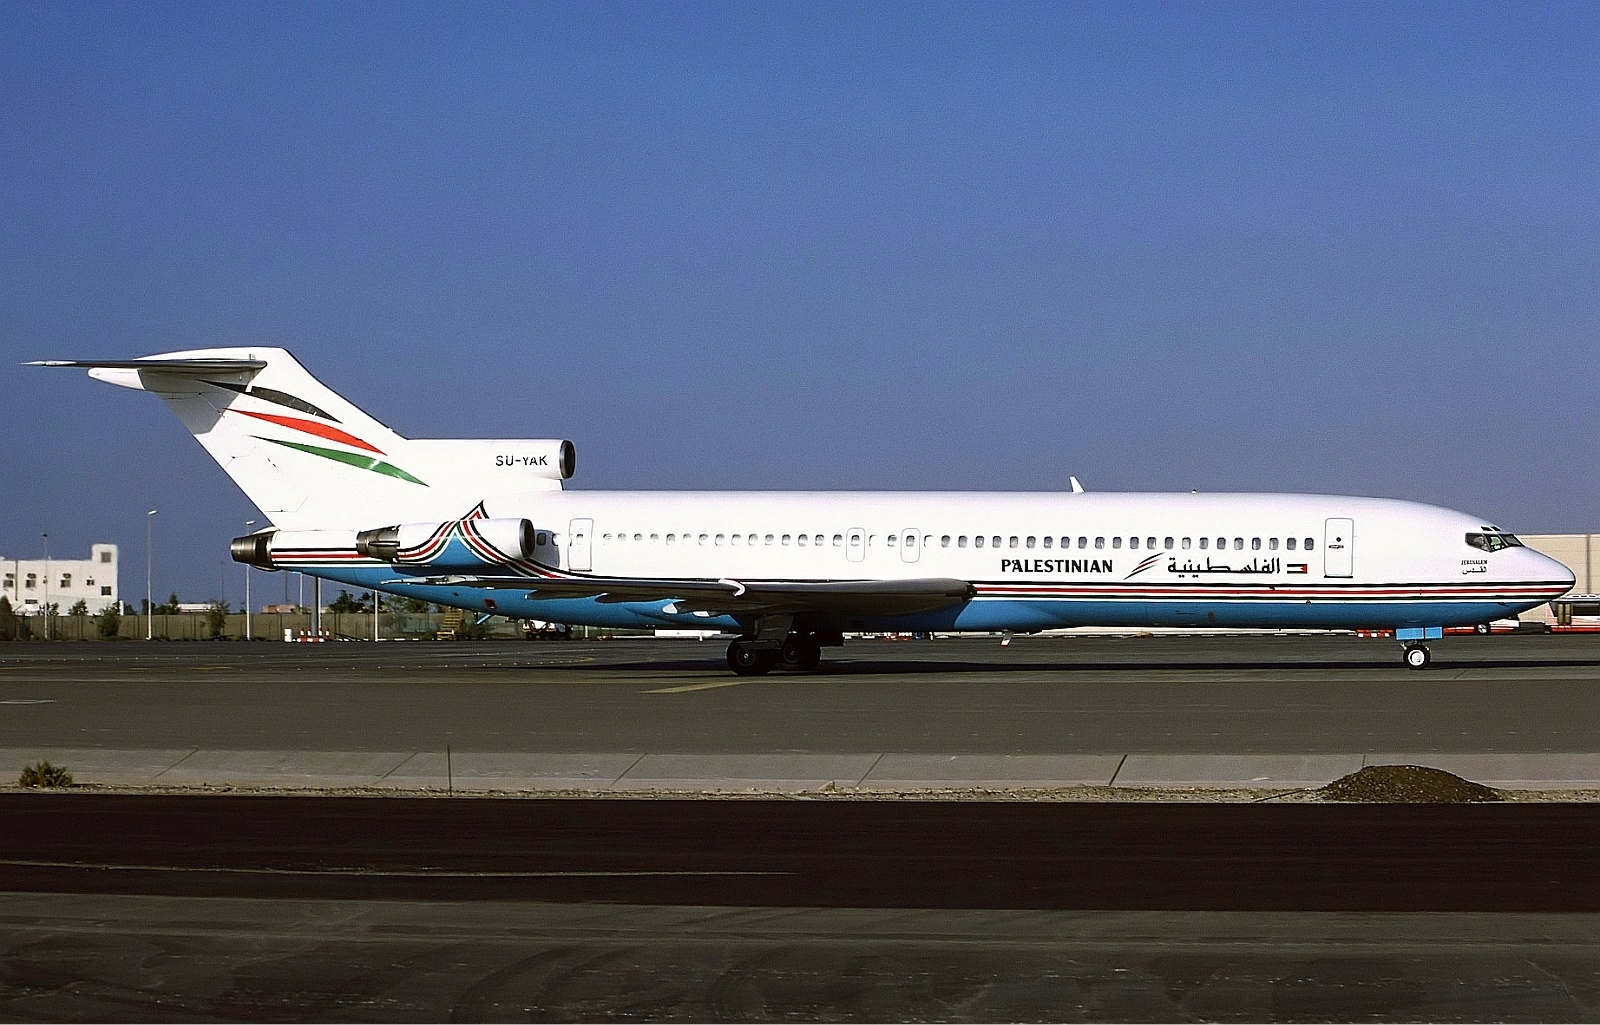 Palestinian Airlines - Wikipedia American Airlines Flights